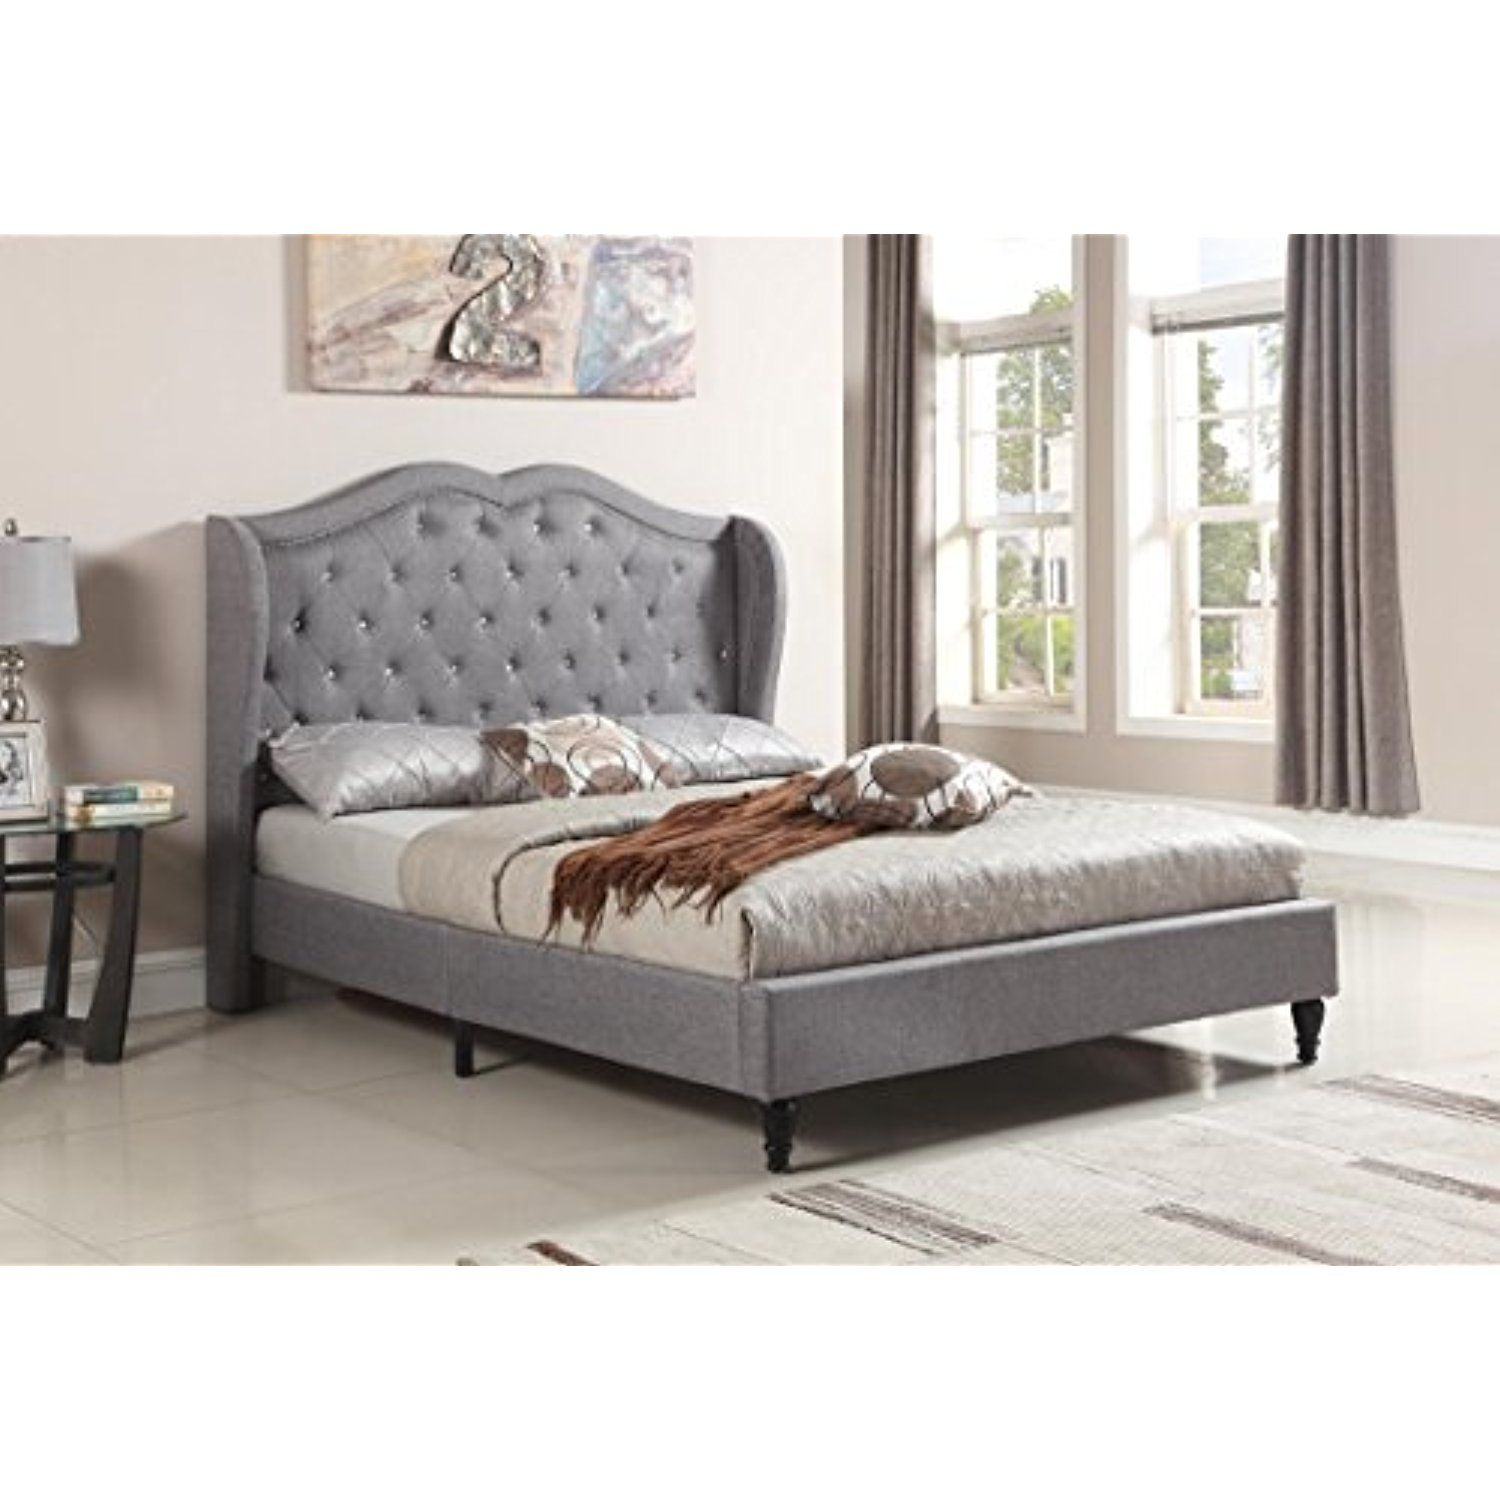 Home Life Premiere Curved Classics Cloth Dark Grey Silver Linen 51 Tall Headboard Platform Bed With Slats King Bed Tall Headboard Interior Design Living Room